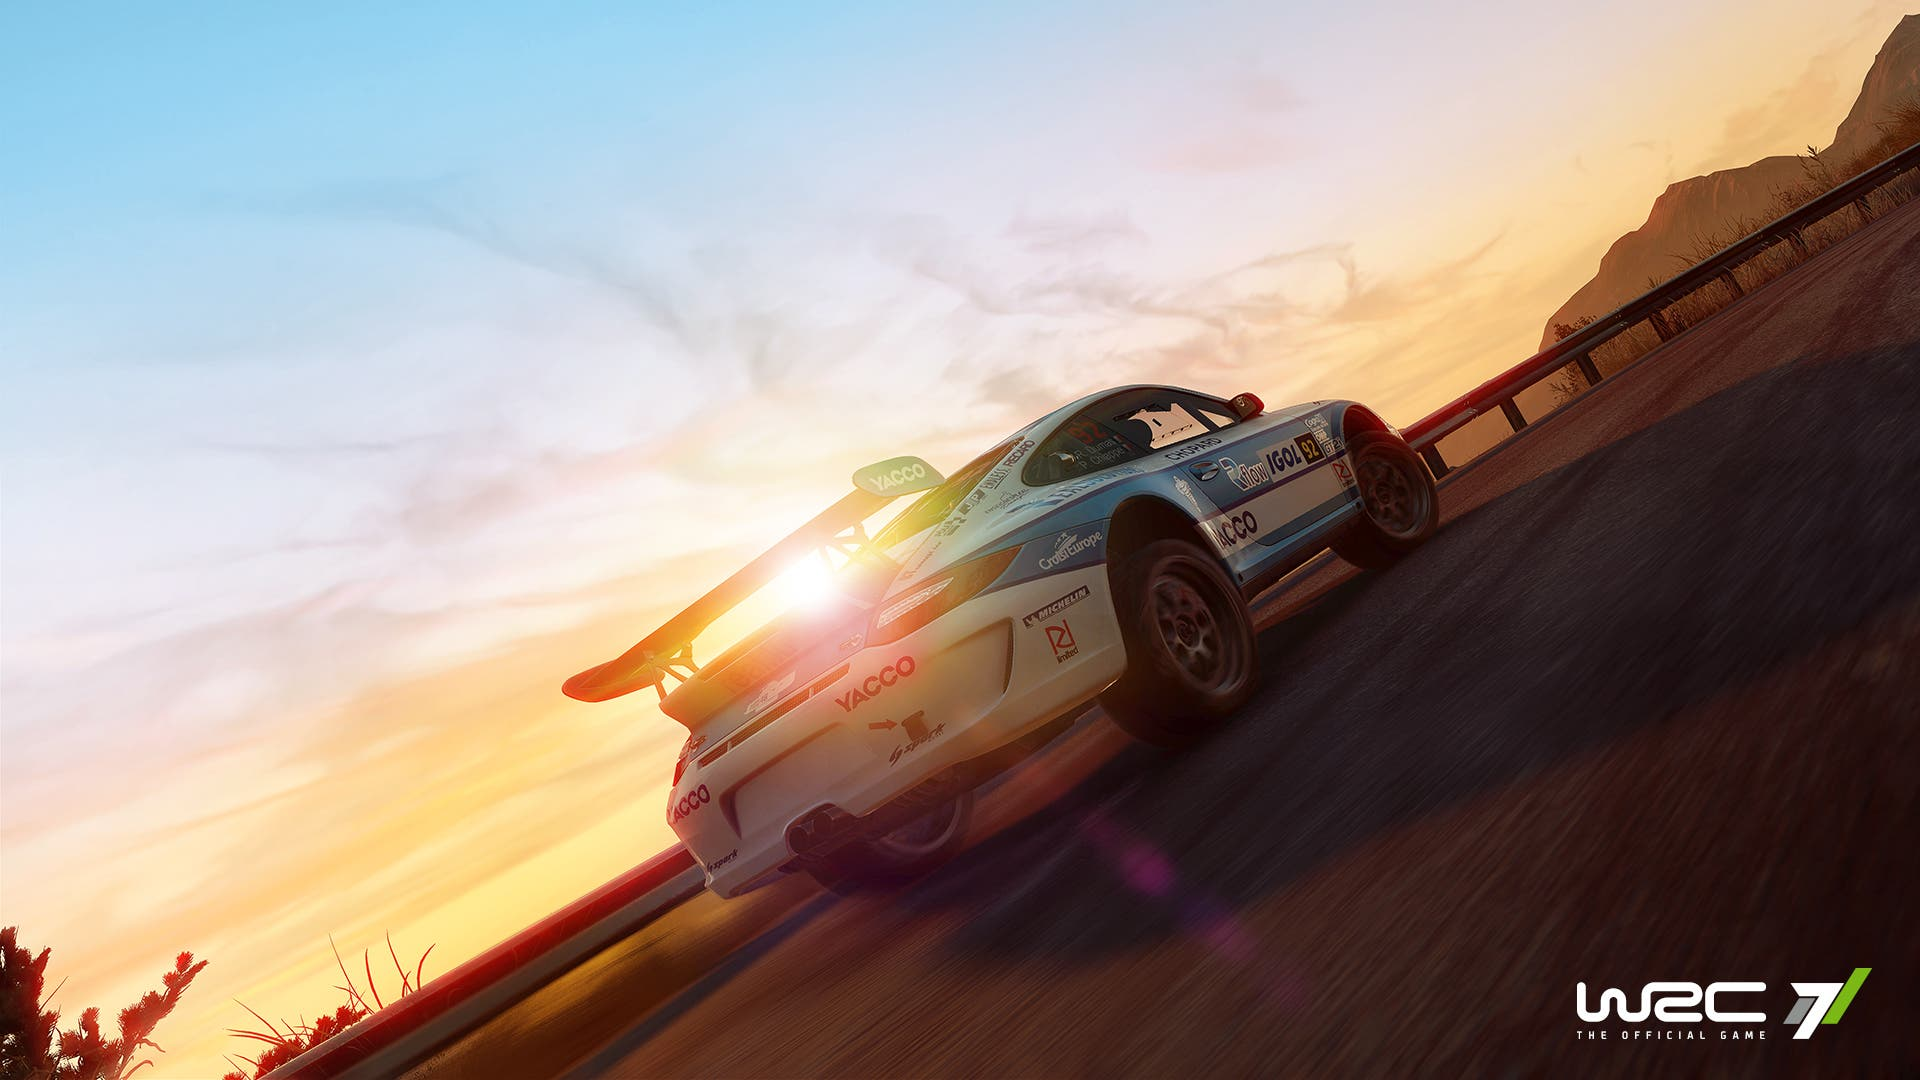 wrc 7 picture 3